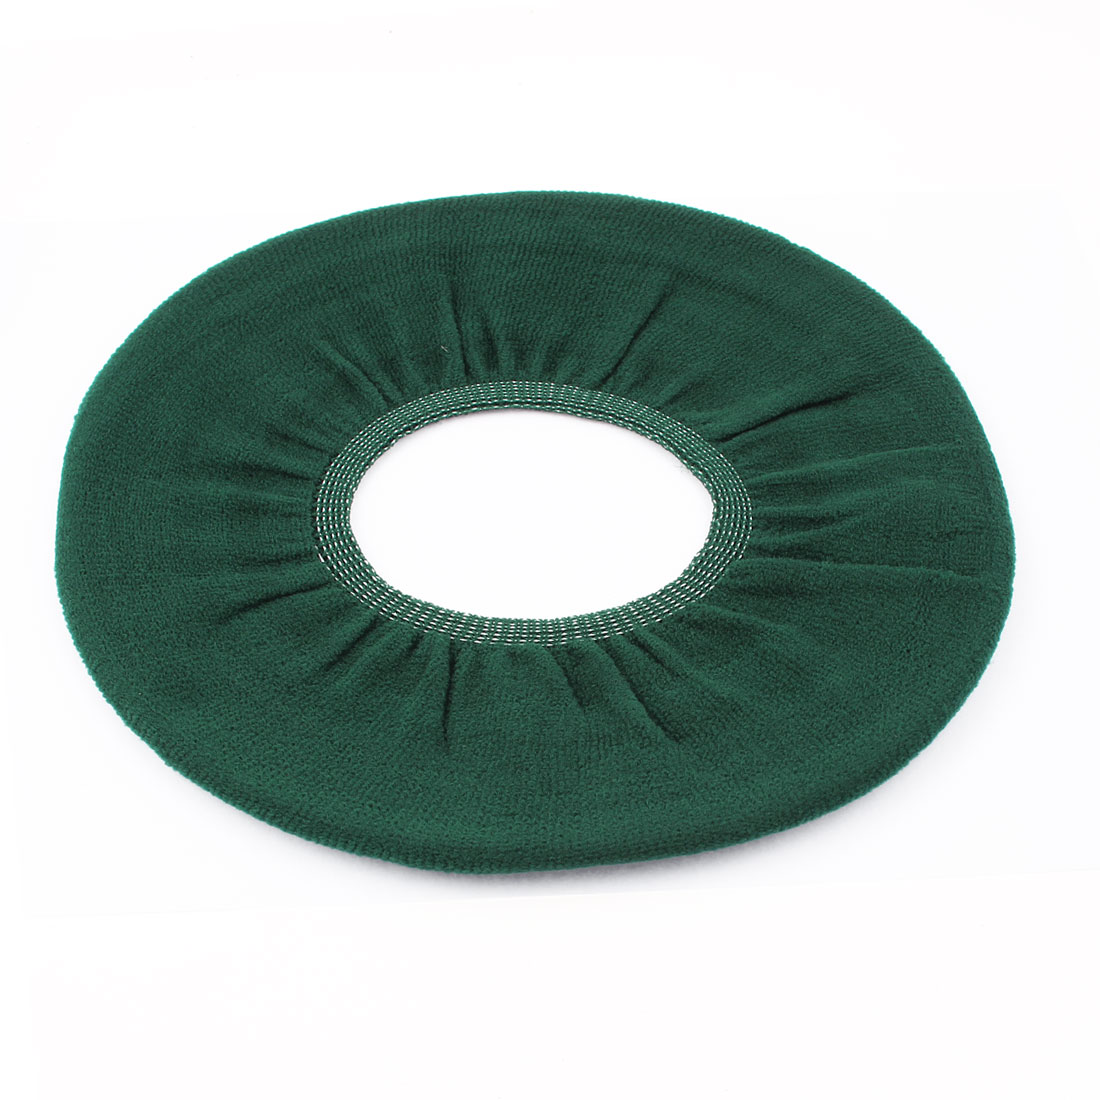 Bathroom Washable Fleece Toilet Mat Closestool Seat Cover Warmer Pad Dark Green